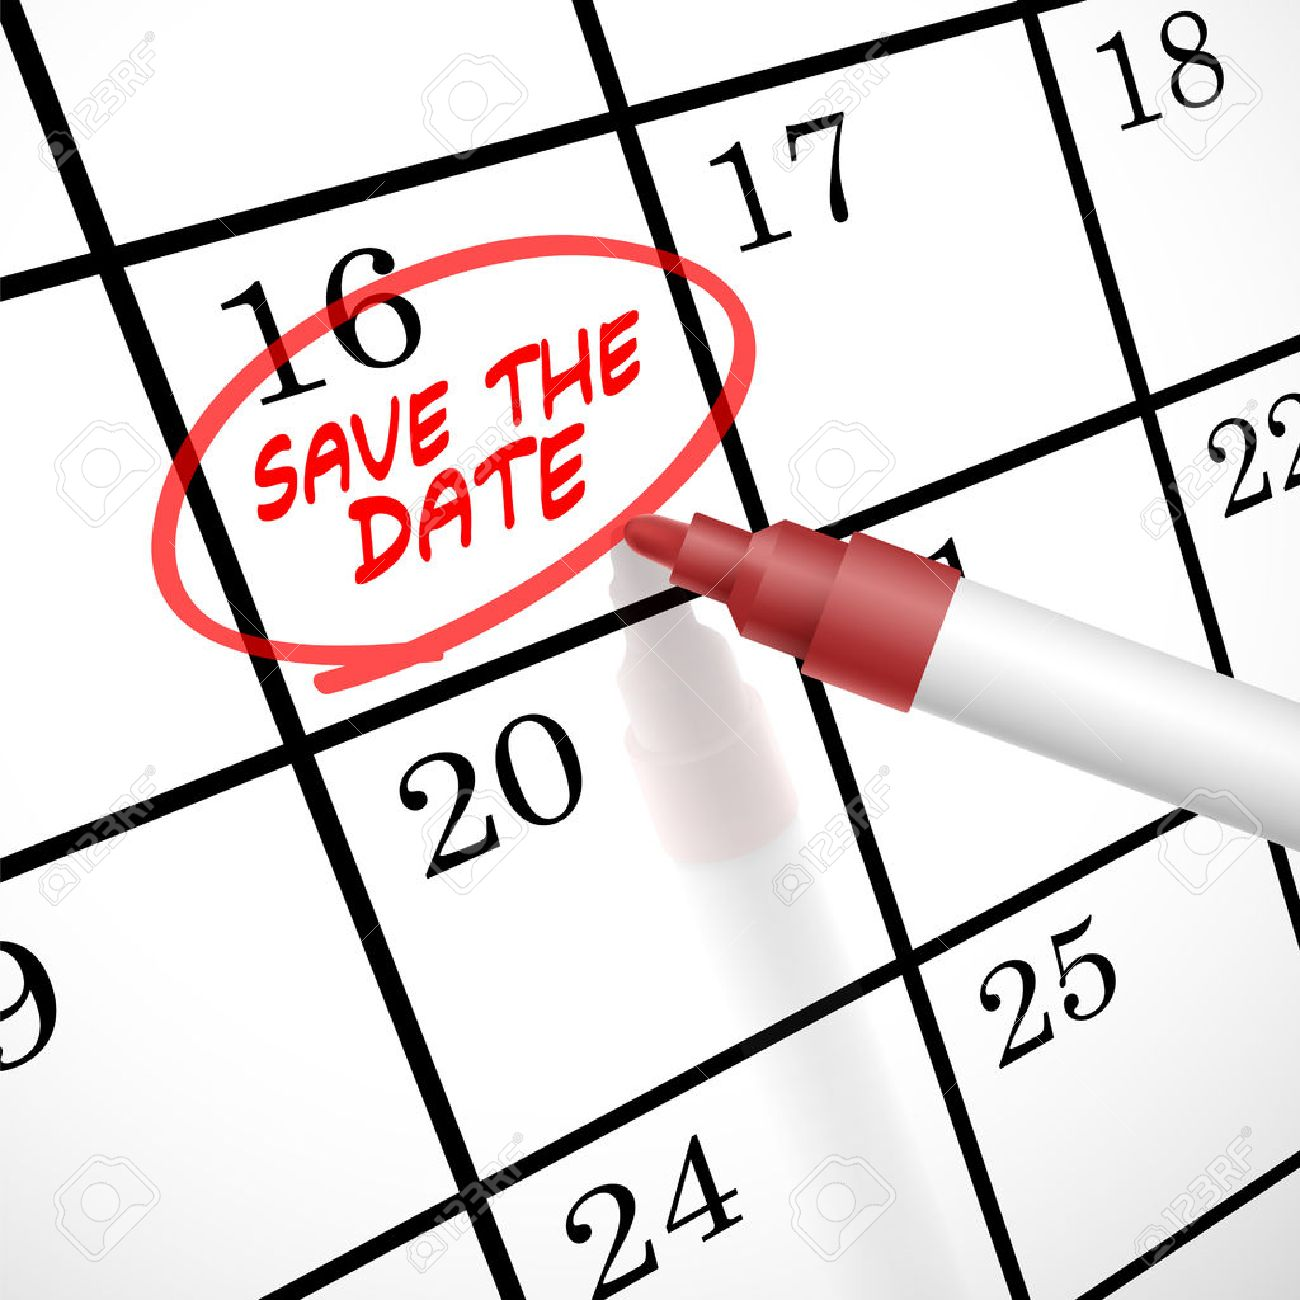 save the date words circle marked on a calendar by a red pen stock vector